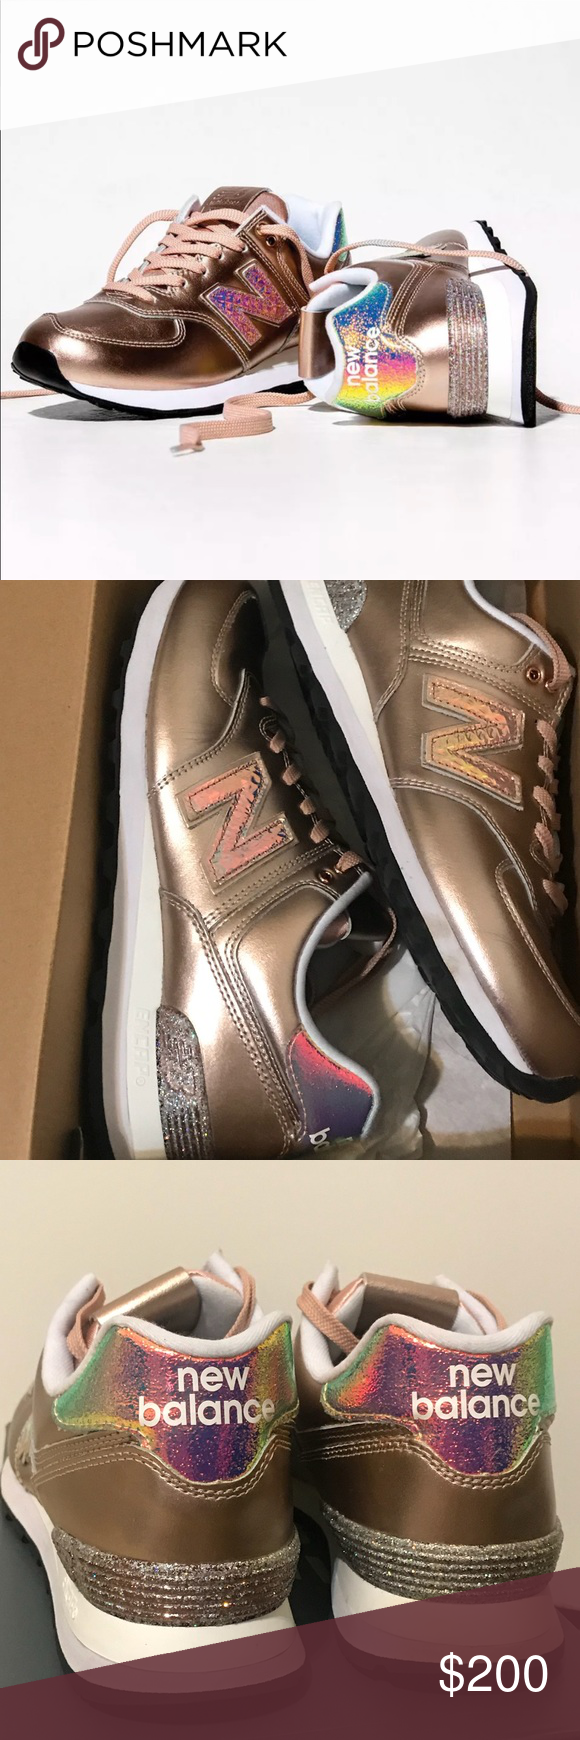 98869dd3a31 Spotted while shopping on Poshmark  New Balance 574 ROSE GOLD LIMITED  EDITION! Glitter!  poshmark  fashion  shopping  style  New Balance  Shoes